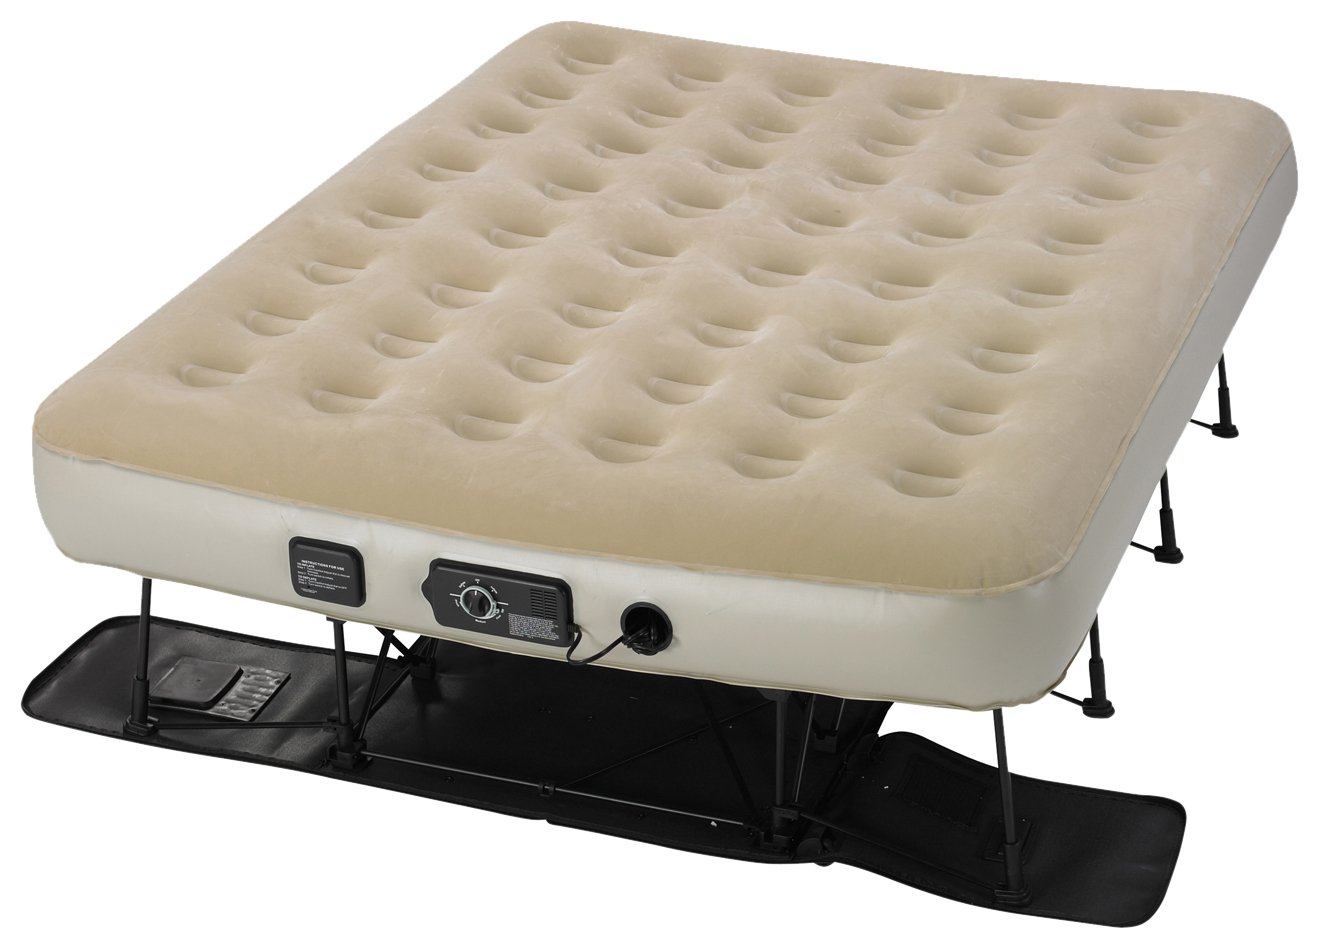 Serta EZ Bed review